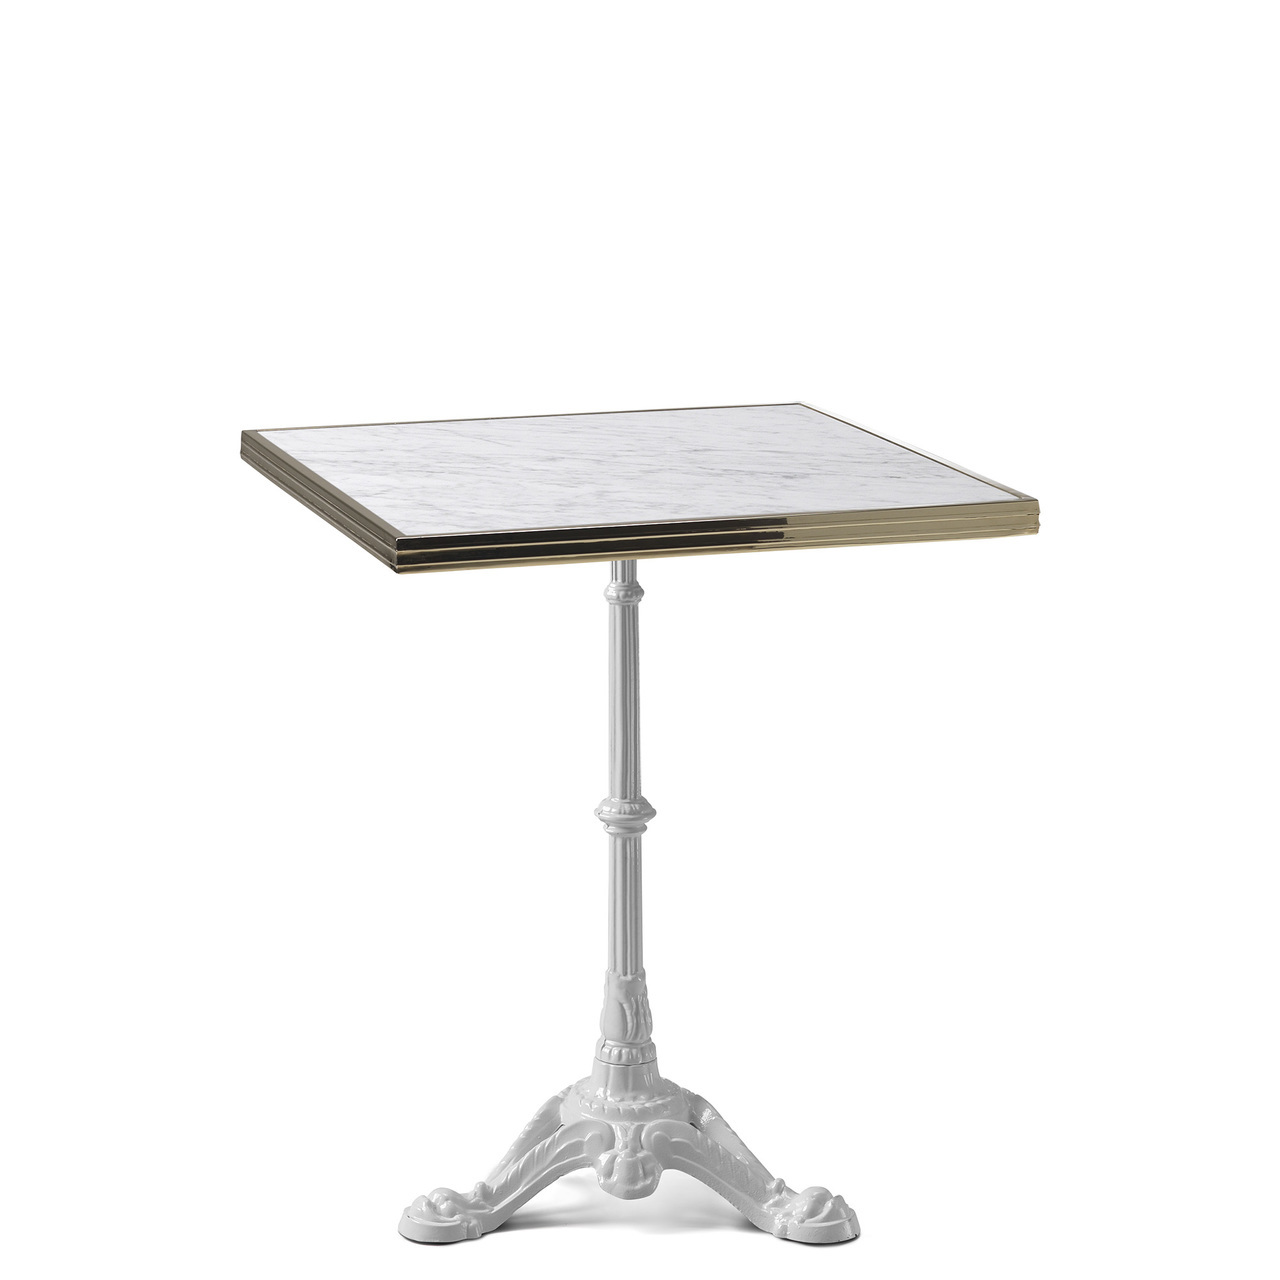 ardamez square white marble haussmann bistro table top marbre laiton carrare copie accent nightstand set kitchen with bench and chairs patio stand rod iron frame unique furniture